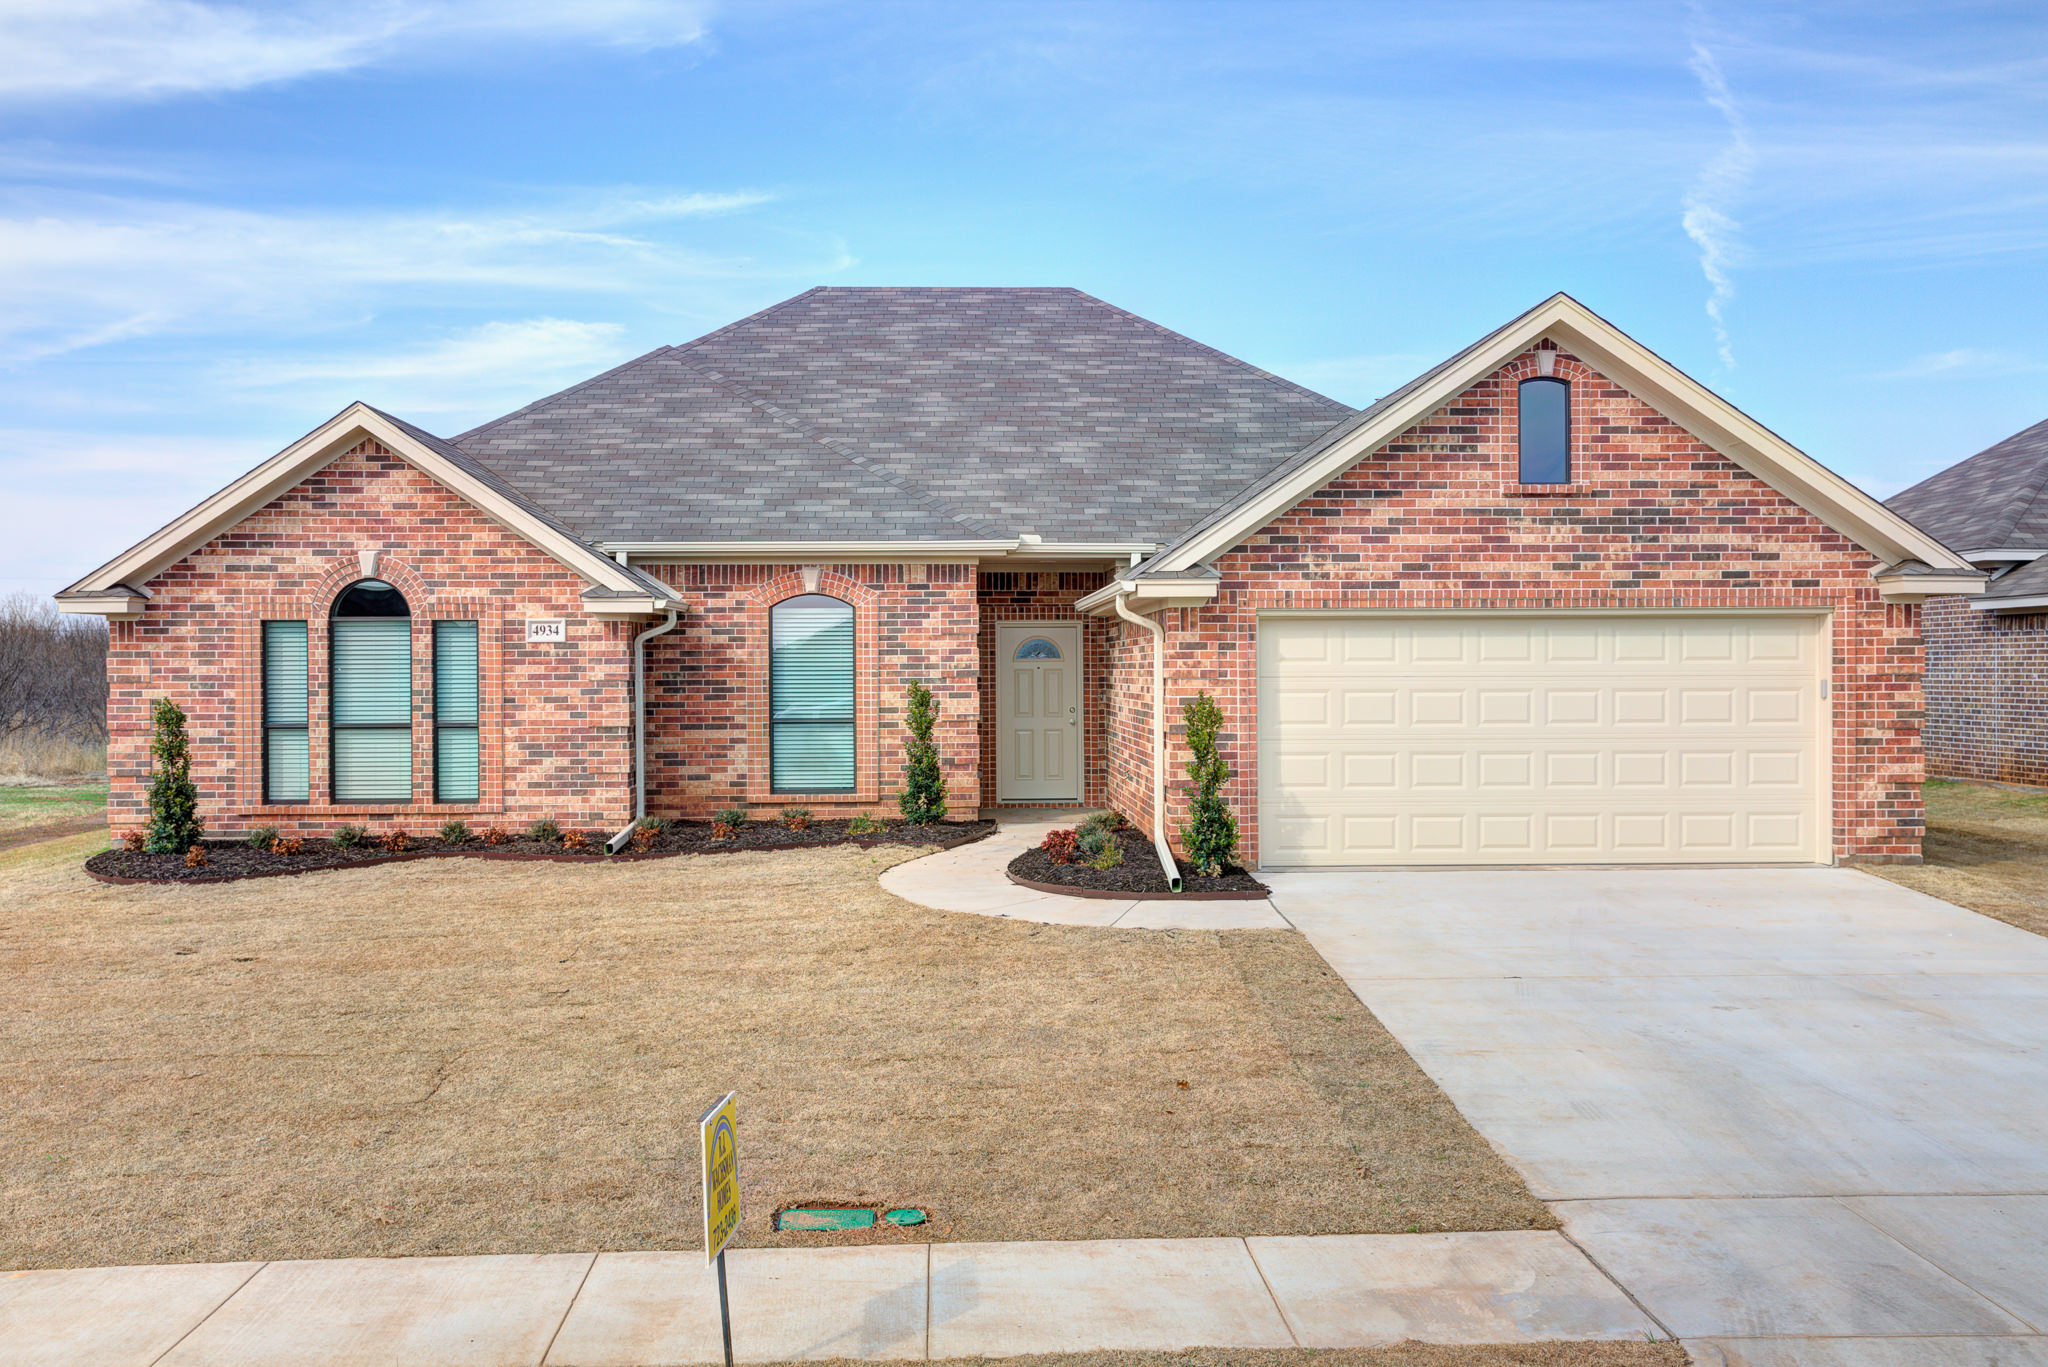 Brand new home in one of Wichita Falls' best school districts!